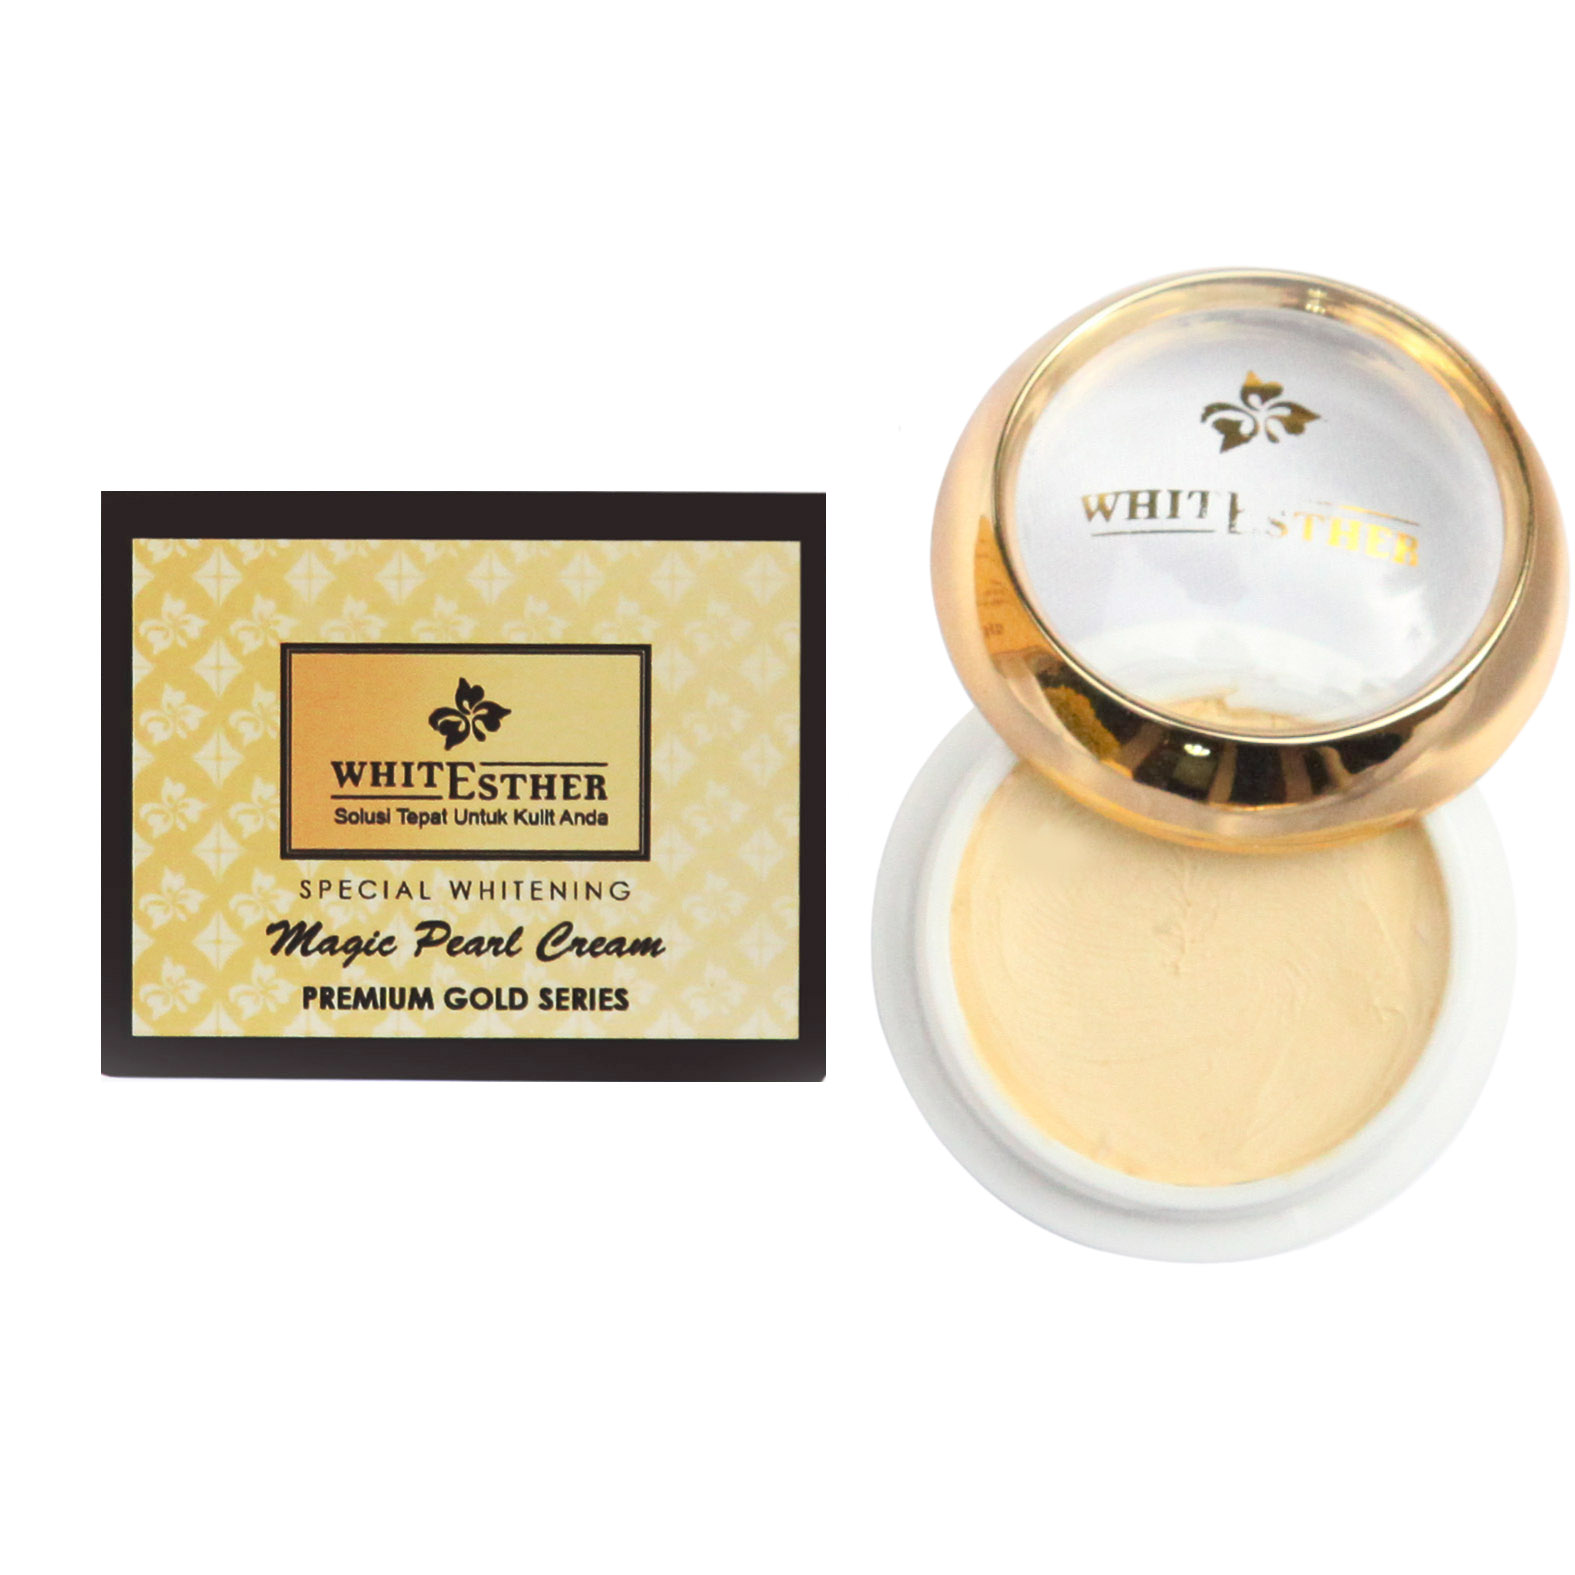 Whitesther Special Whitening Magic Pearl Cream